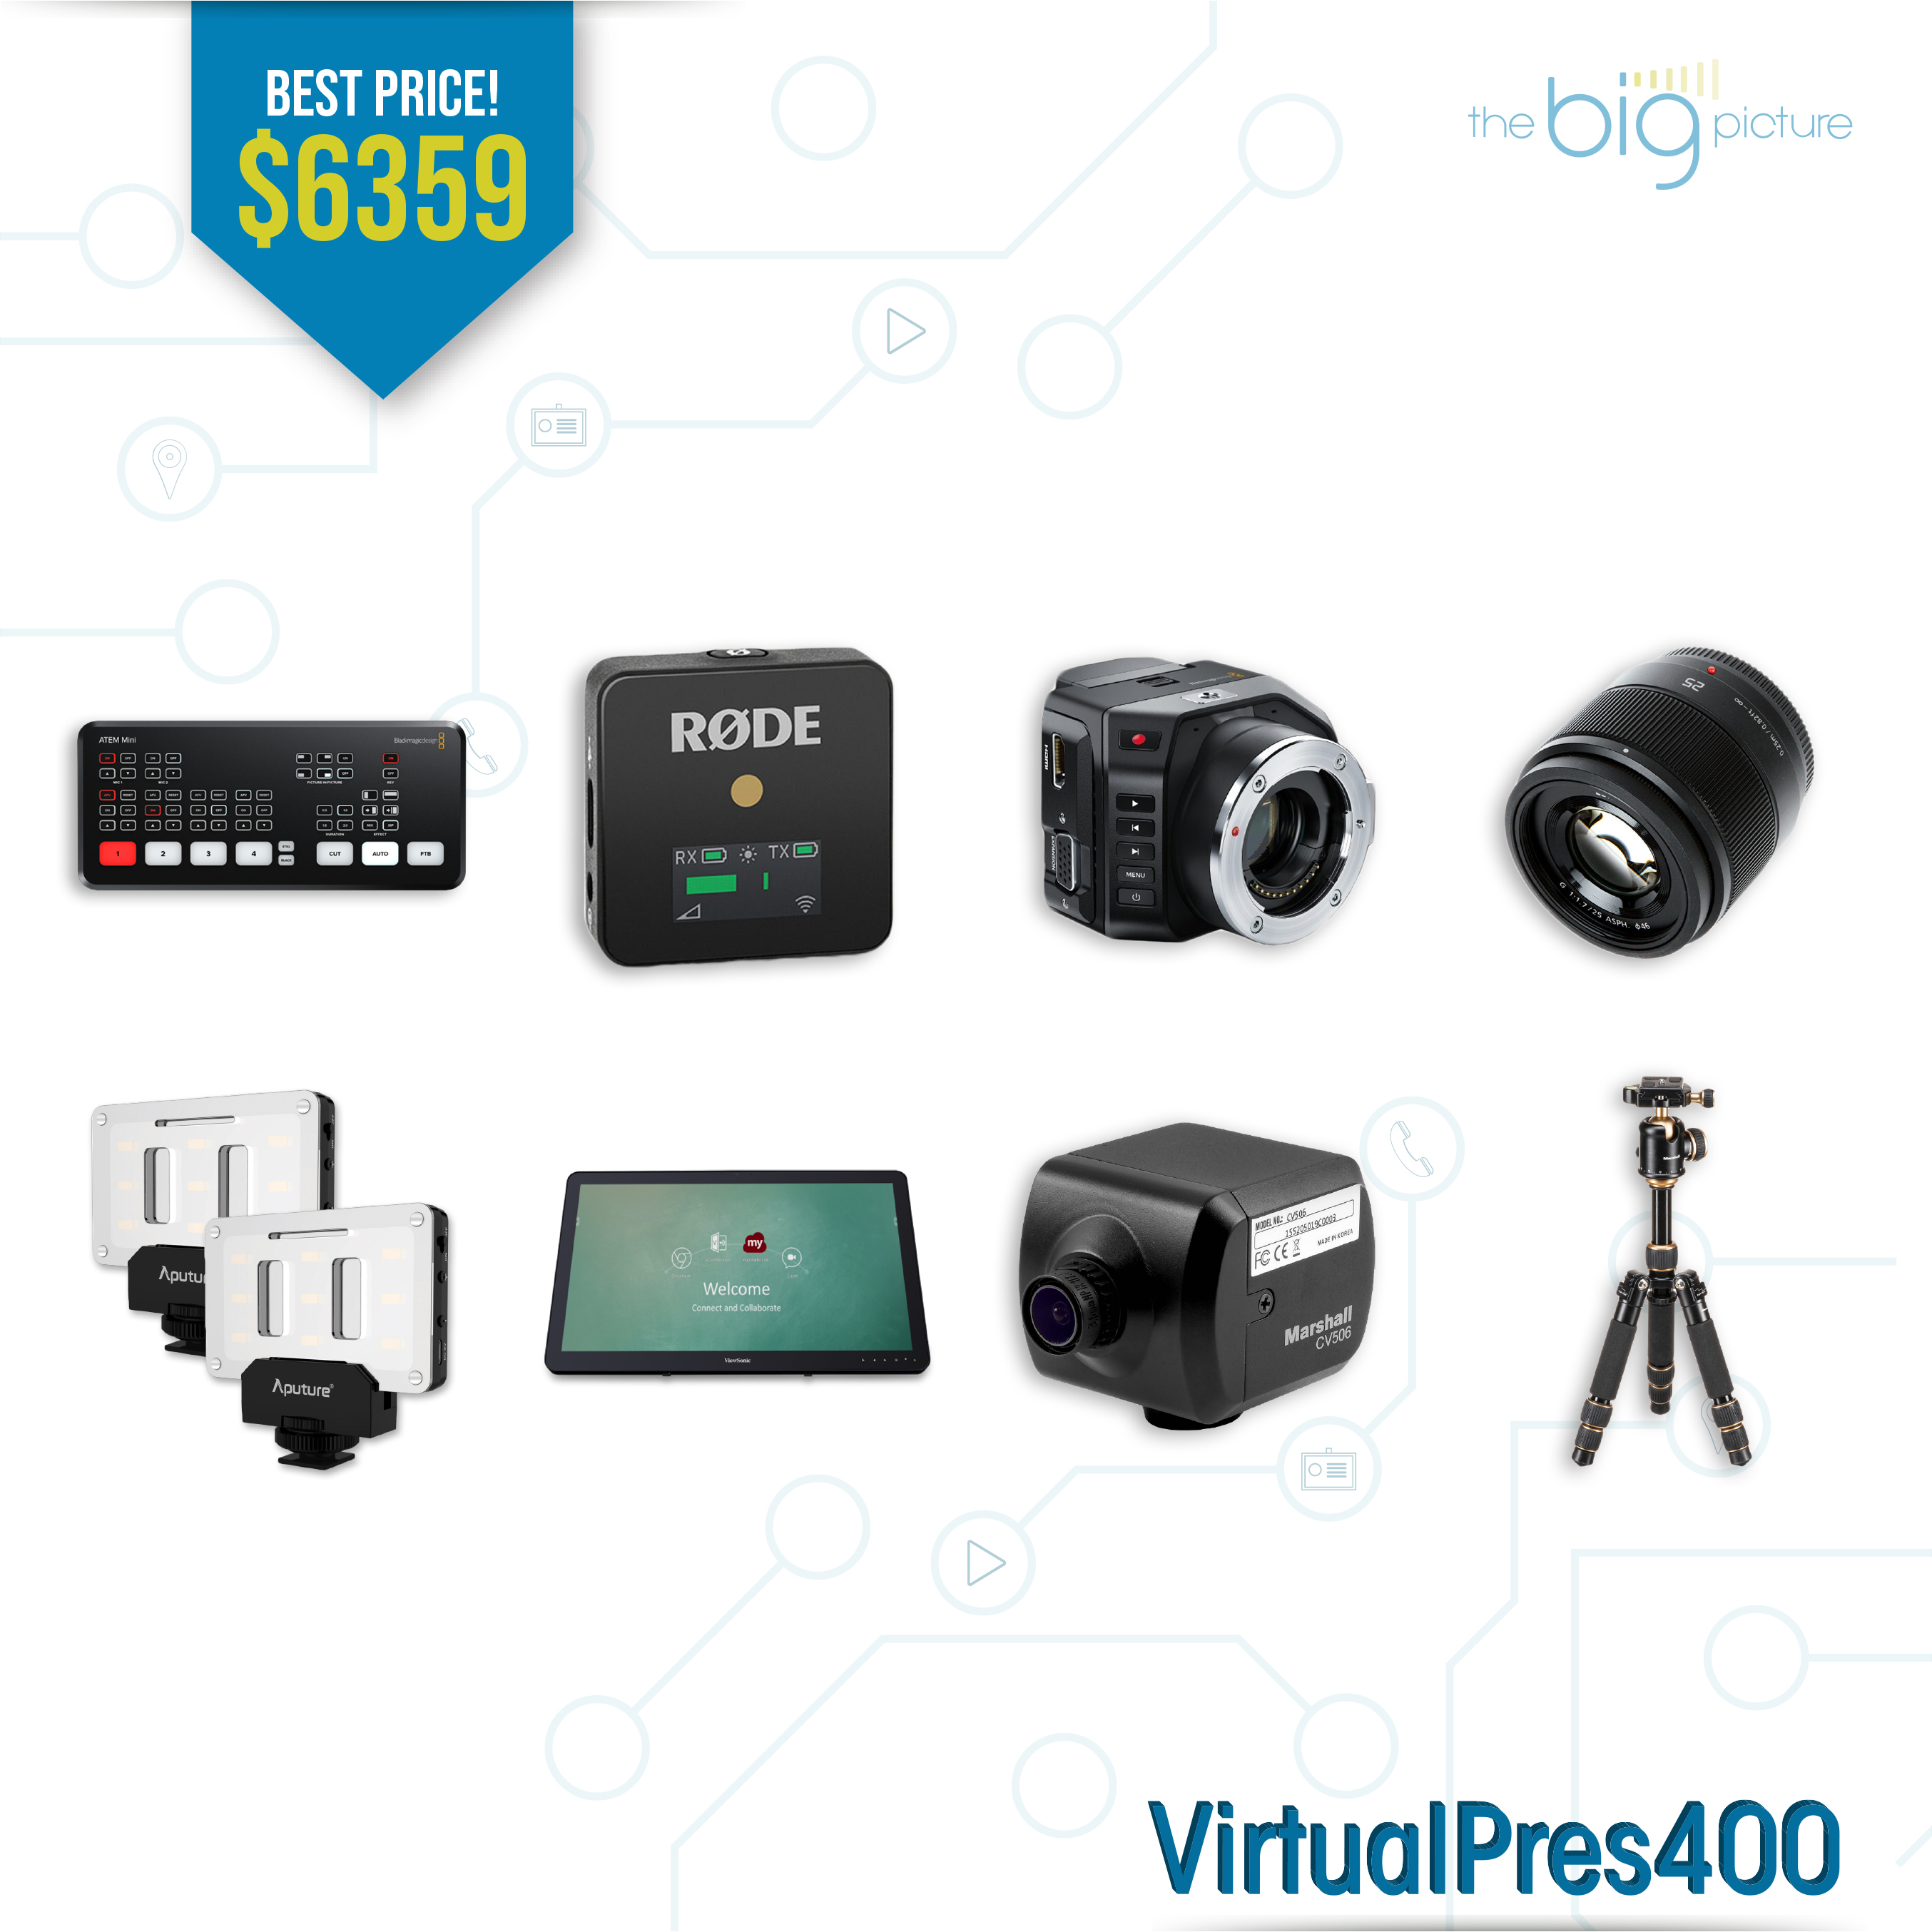 A set of products for VirtualPres400